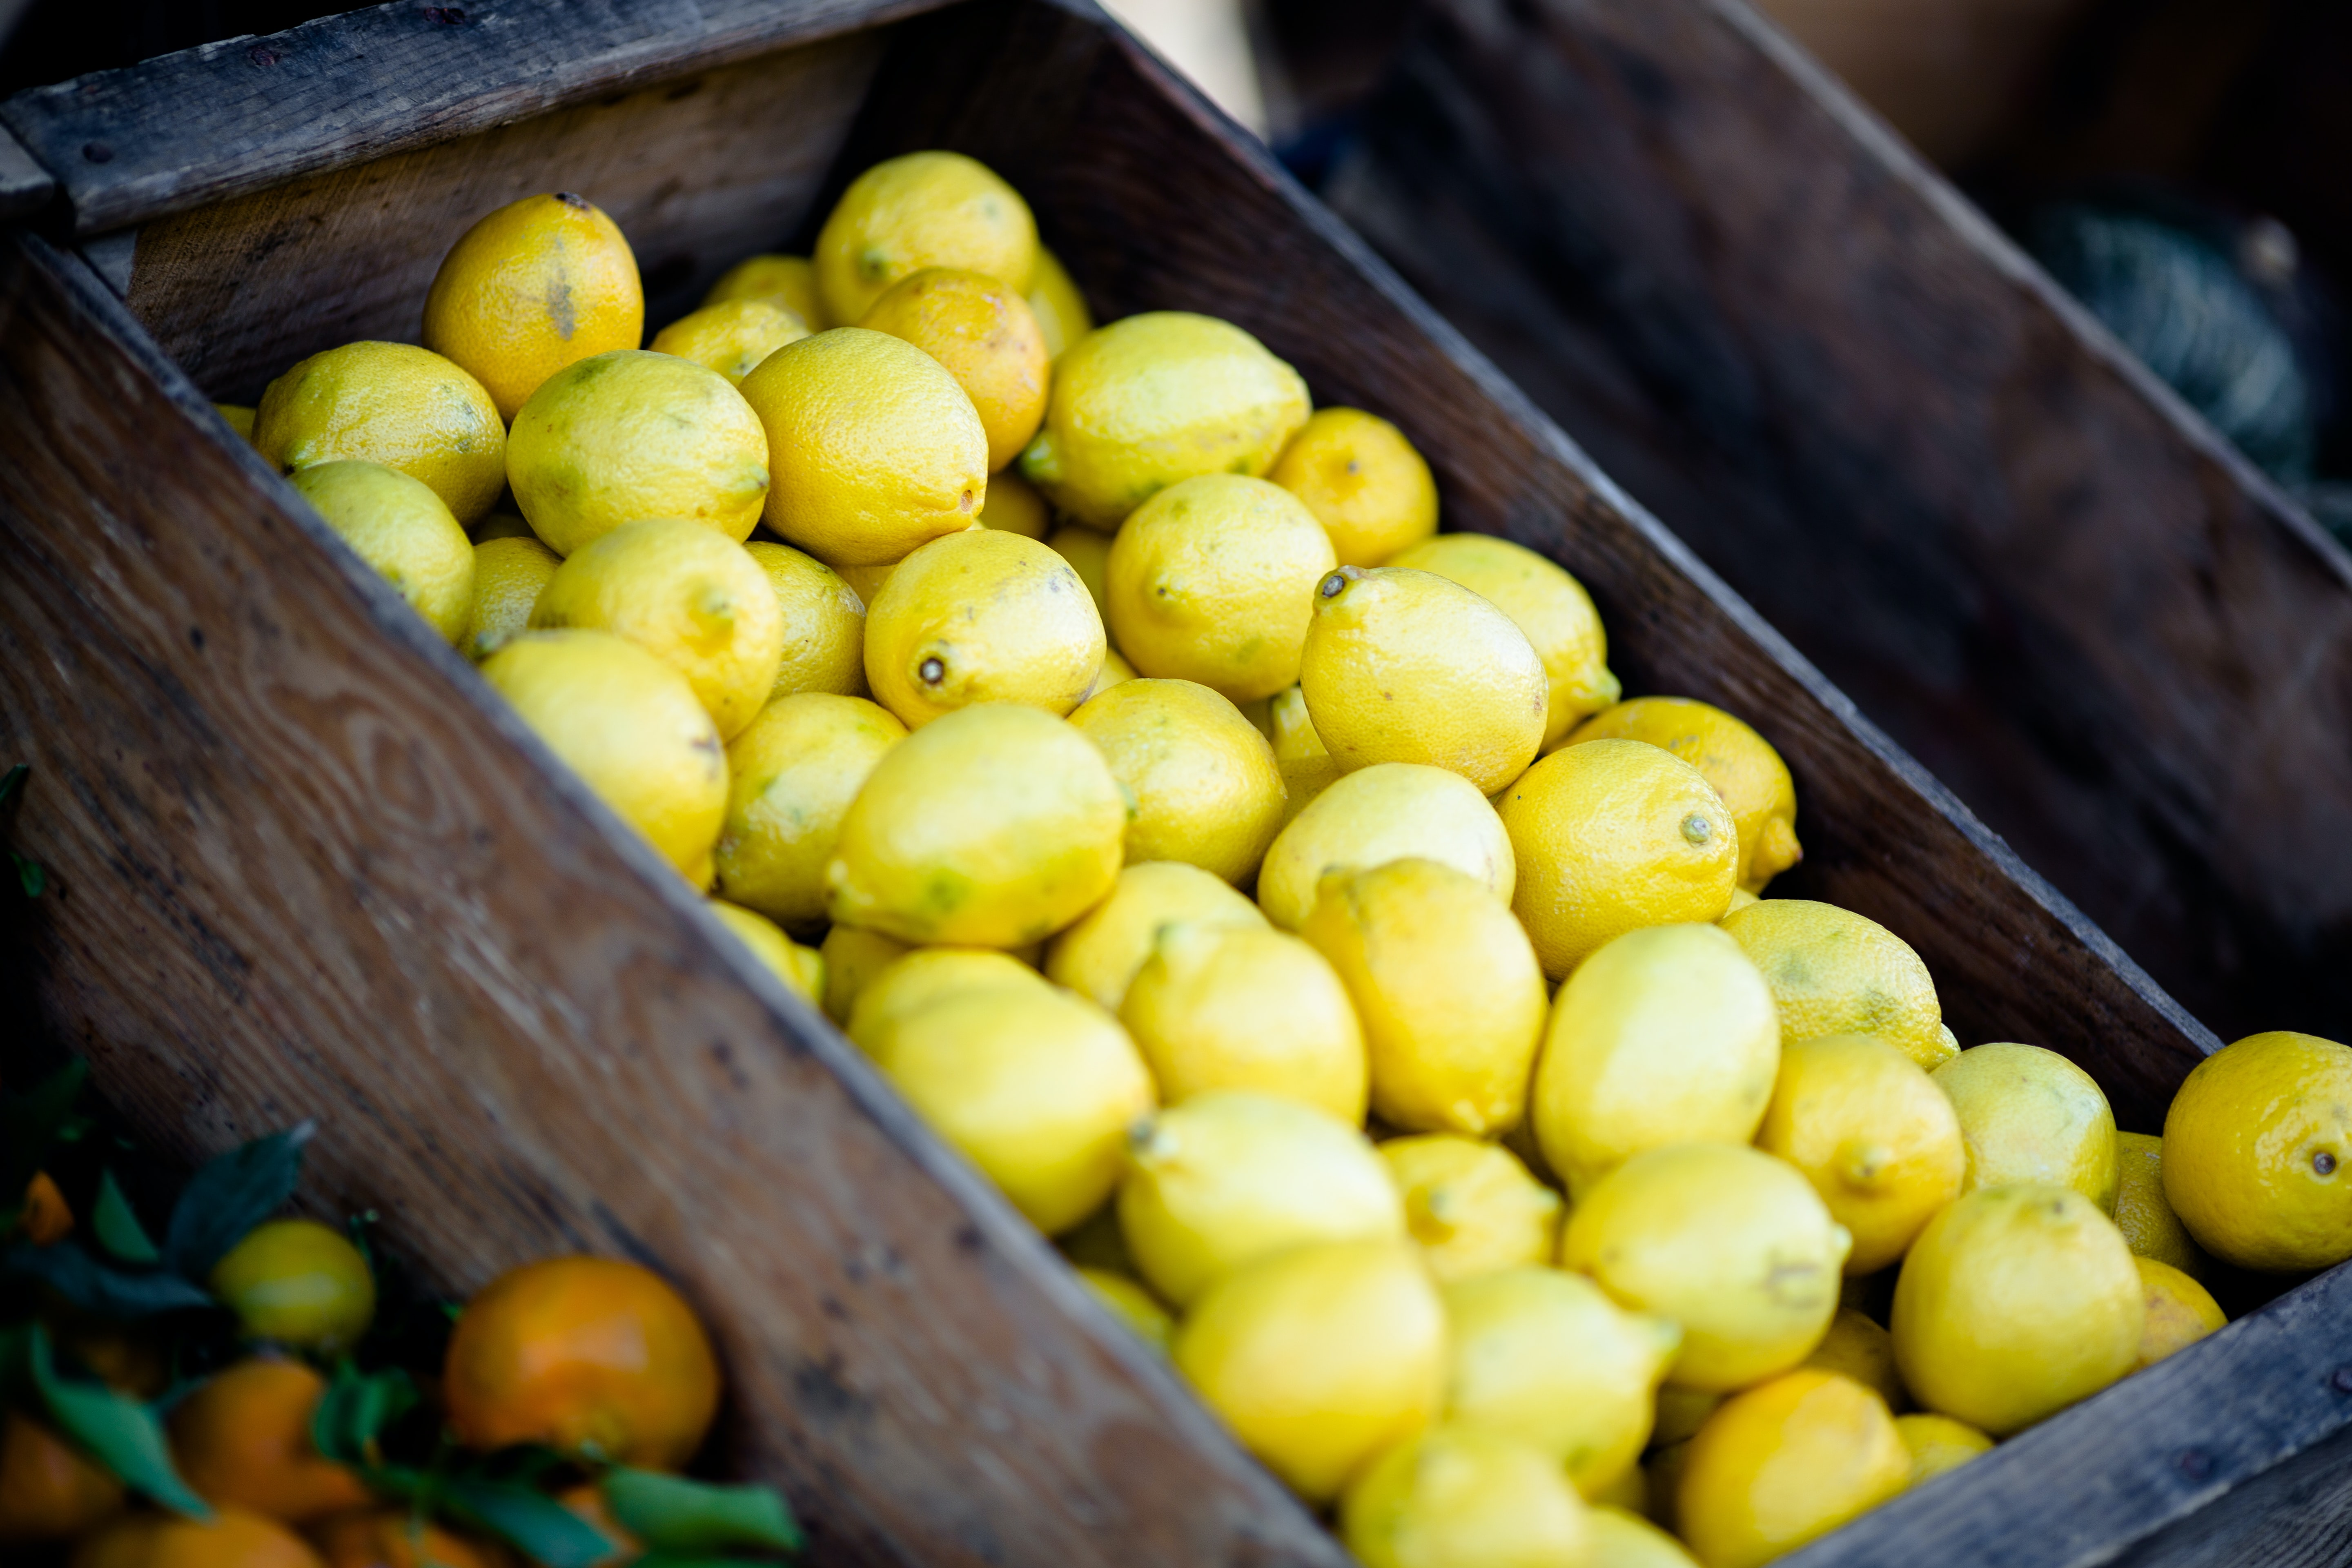 Wooden crates of fresh lemons at a fruit vendor